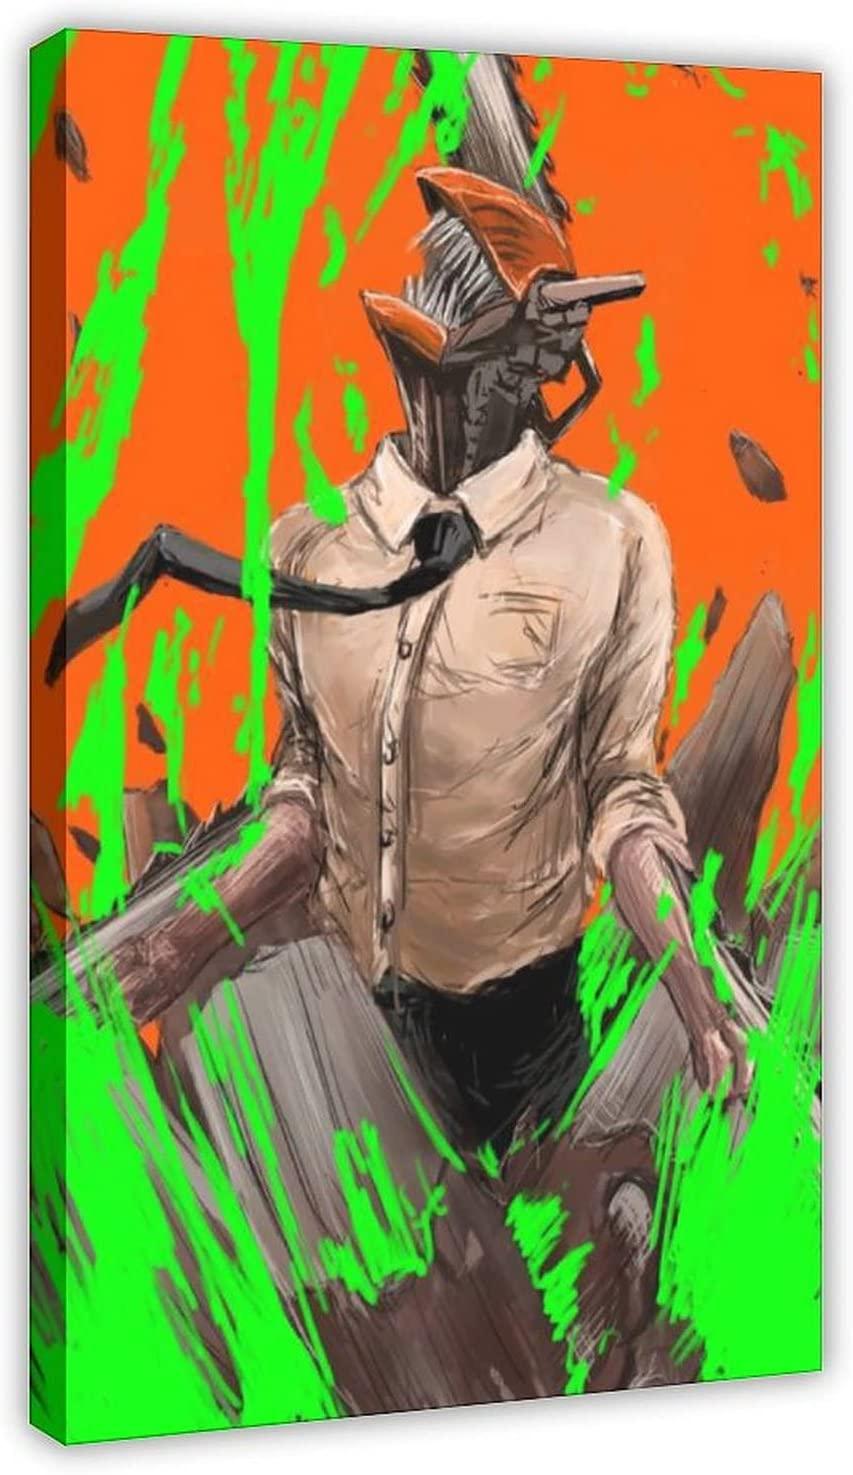 Anime Chainsaw Man 5 Canvas Popular standard Poster Print Max 83% OFF Wall Picture Decor Art